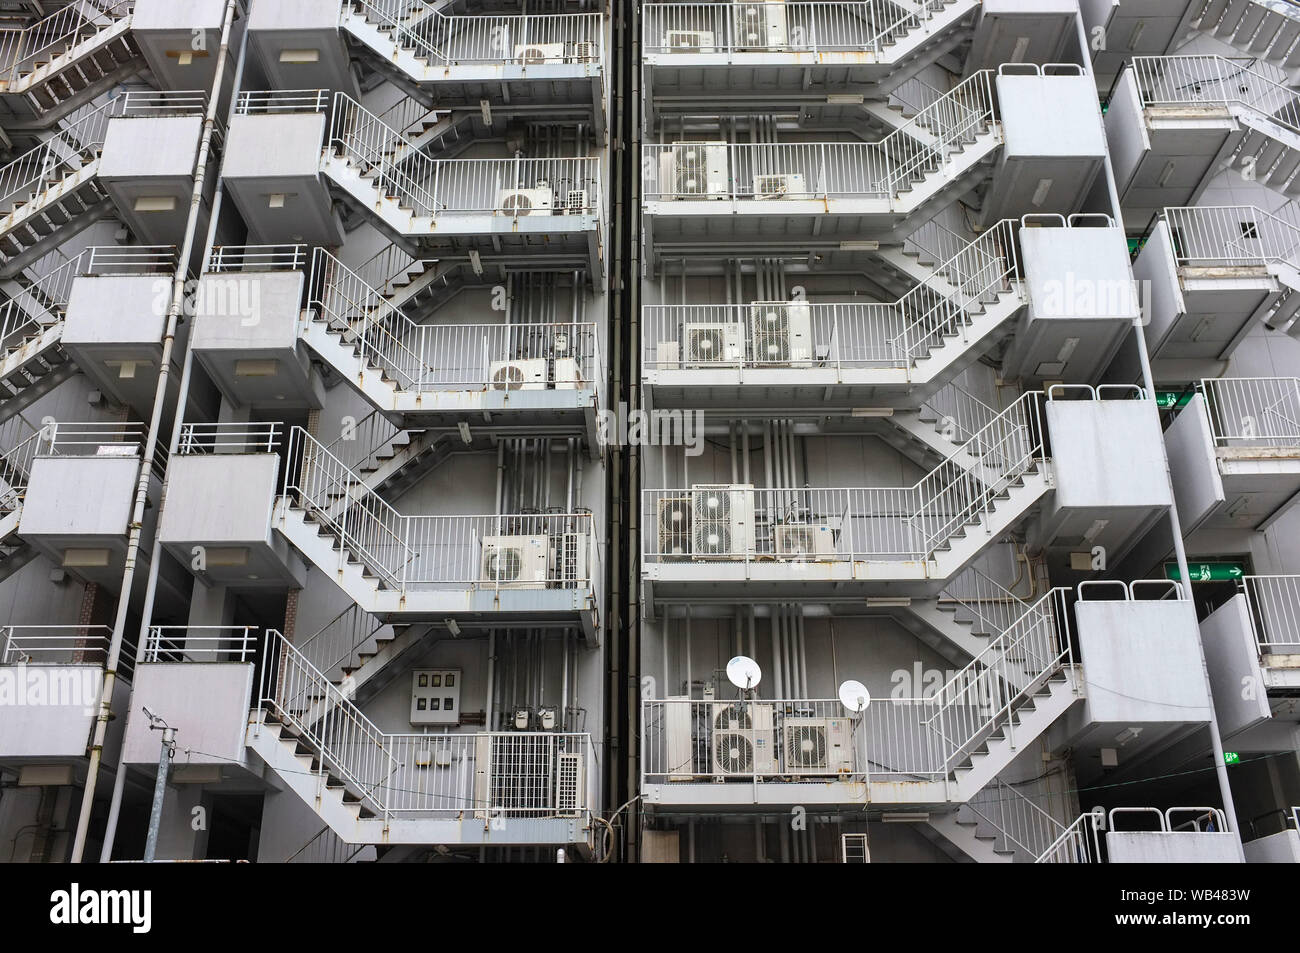 staircases-outside-habitation-building-i